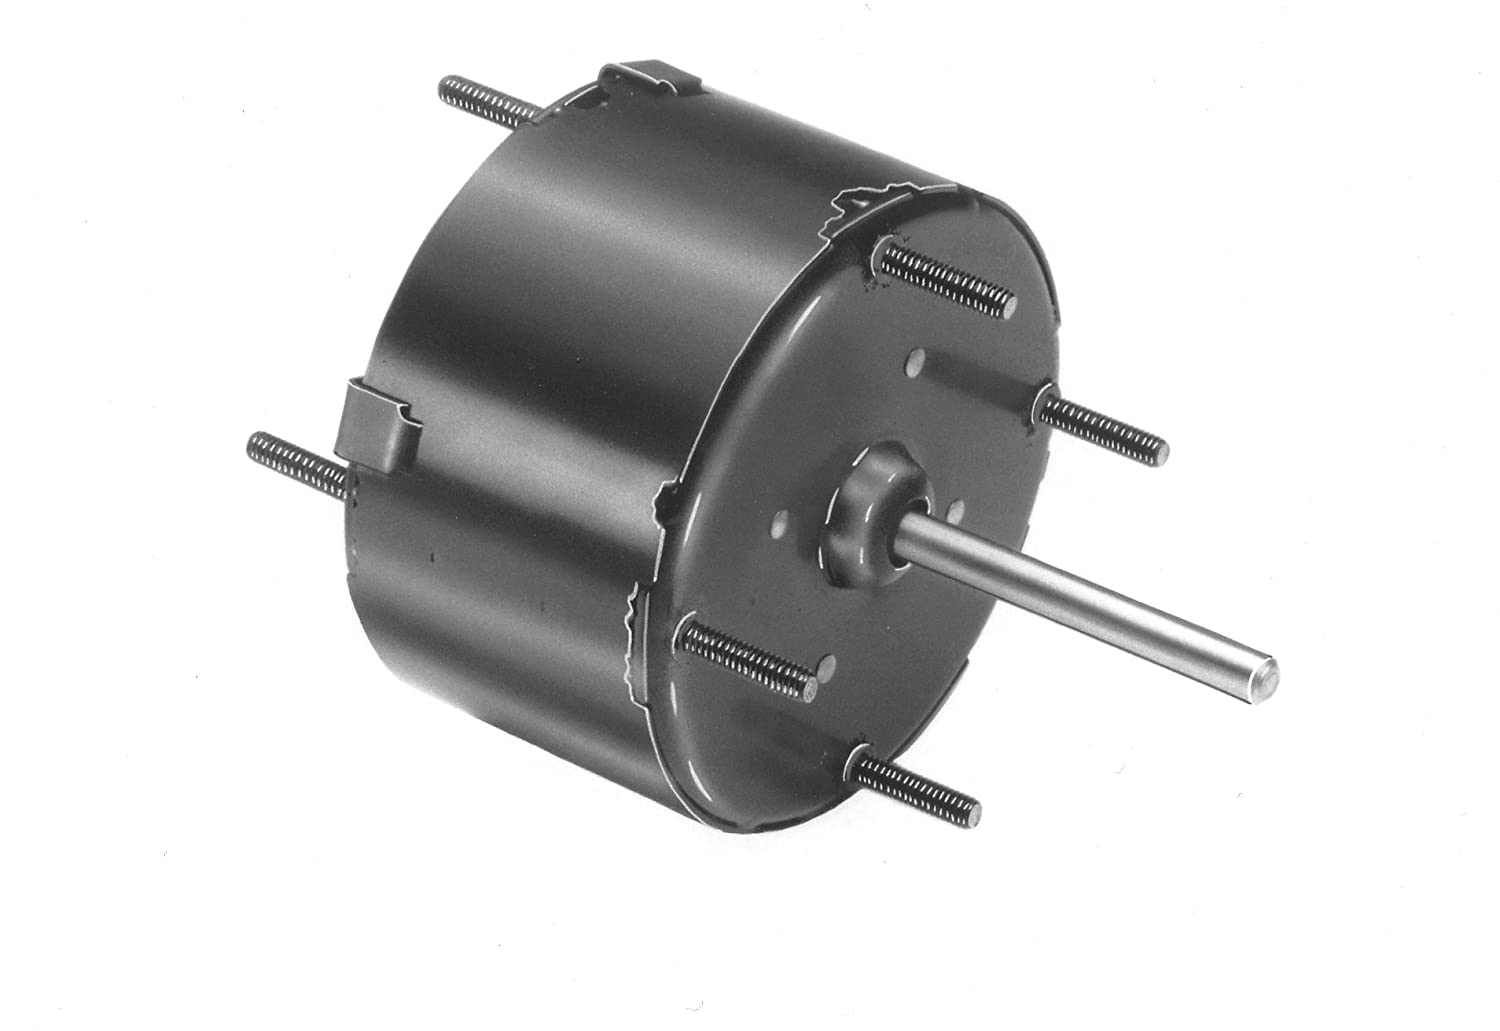 Fasco D602 3.3 Frame Totally Enclosed Shaded Pole General Purpose Motor with/Sleeve Bearing 0.9 amps 1500rpm 1//50HP CW Rotation 60Hz 115V